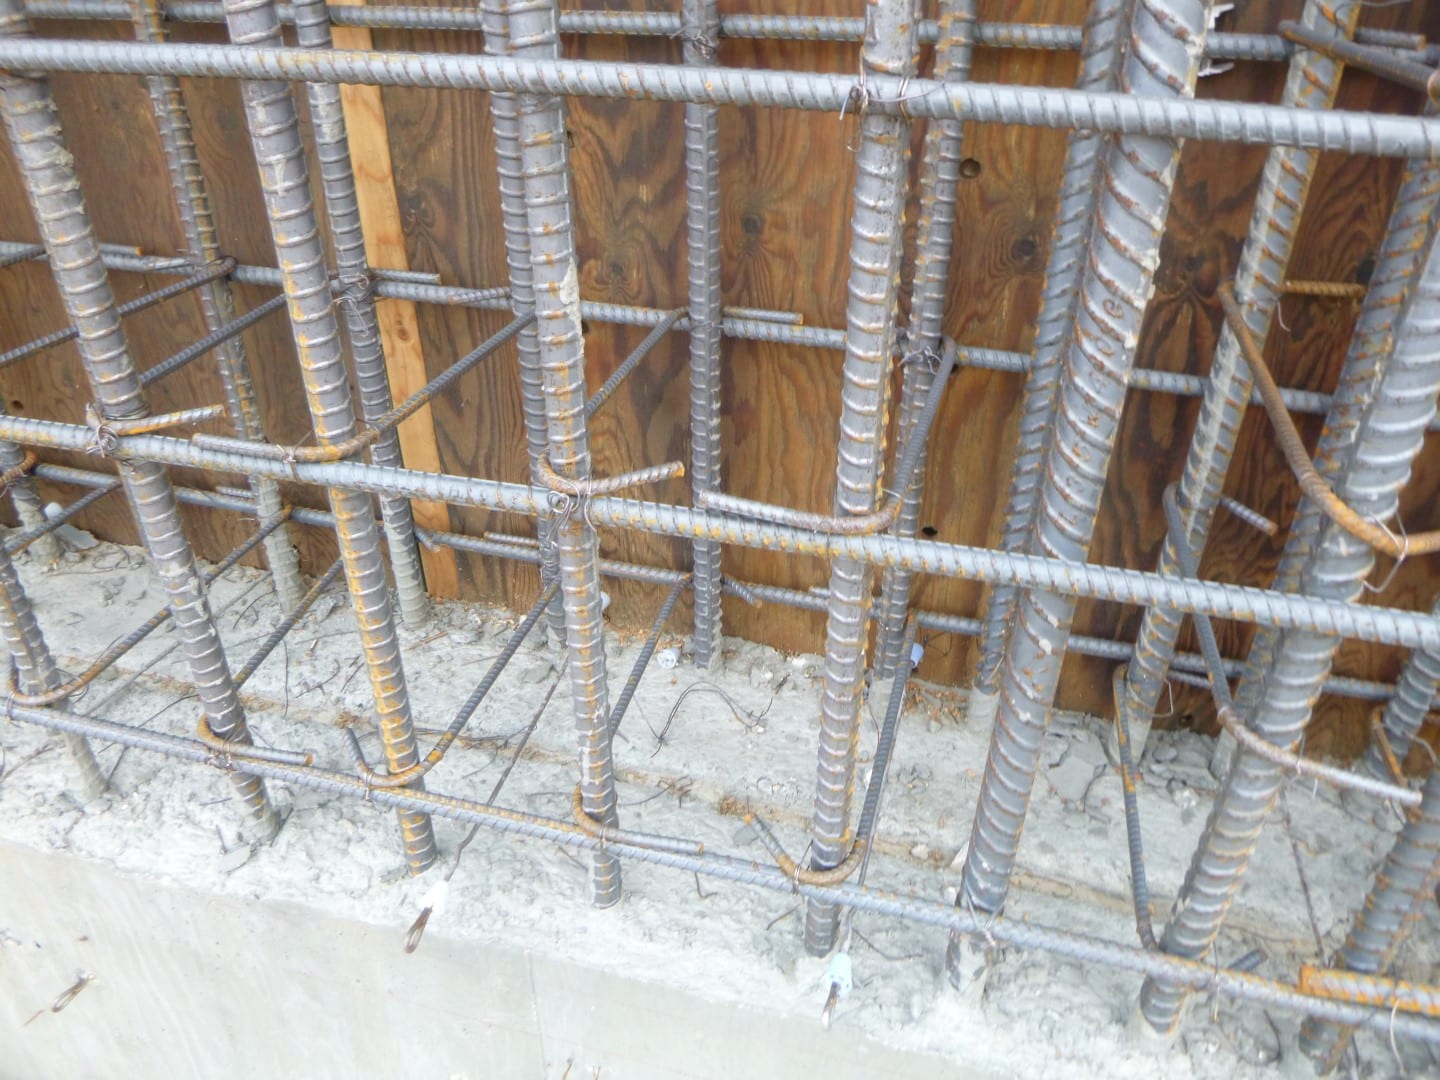 steel bars for building materials